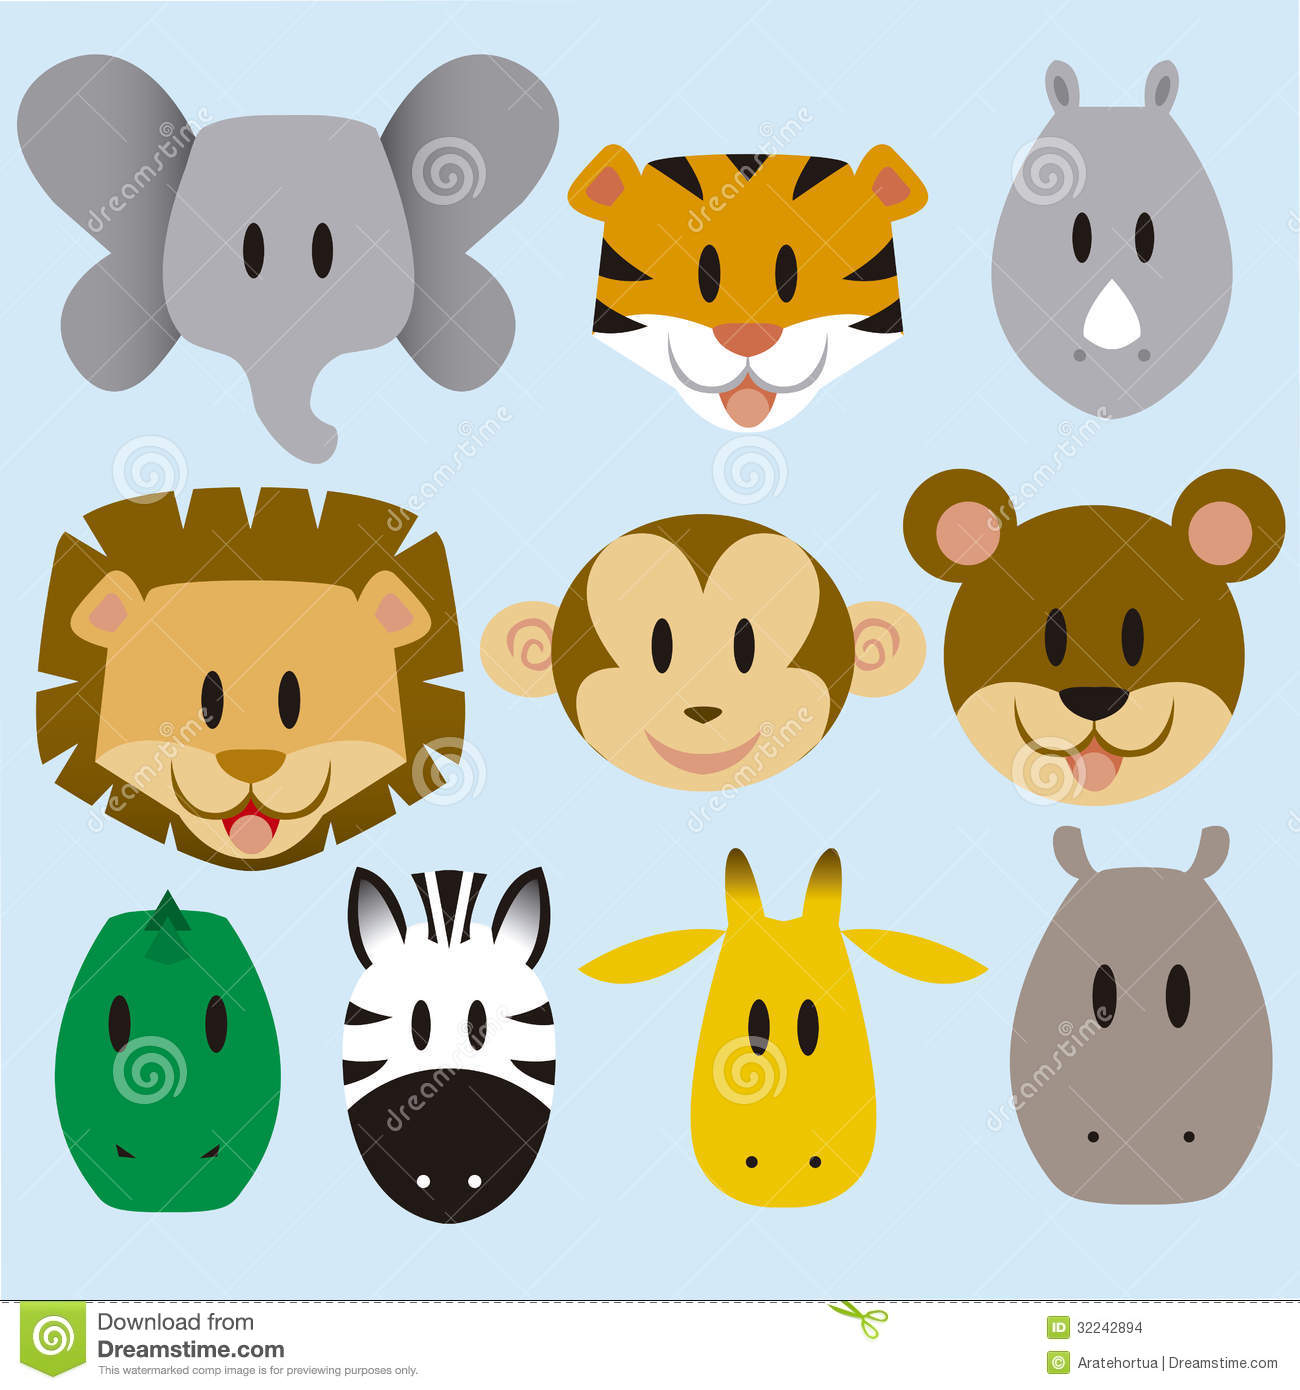 18 Cartoon Baby Jungle Animals Vector Images - Cartoon ...